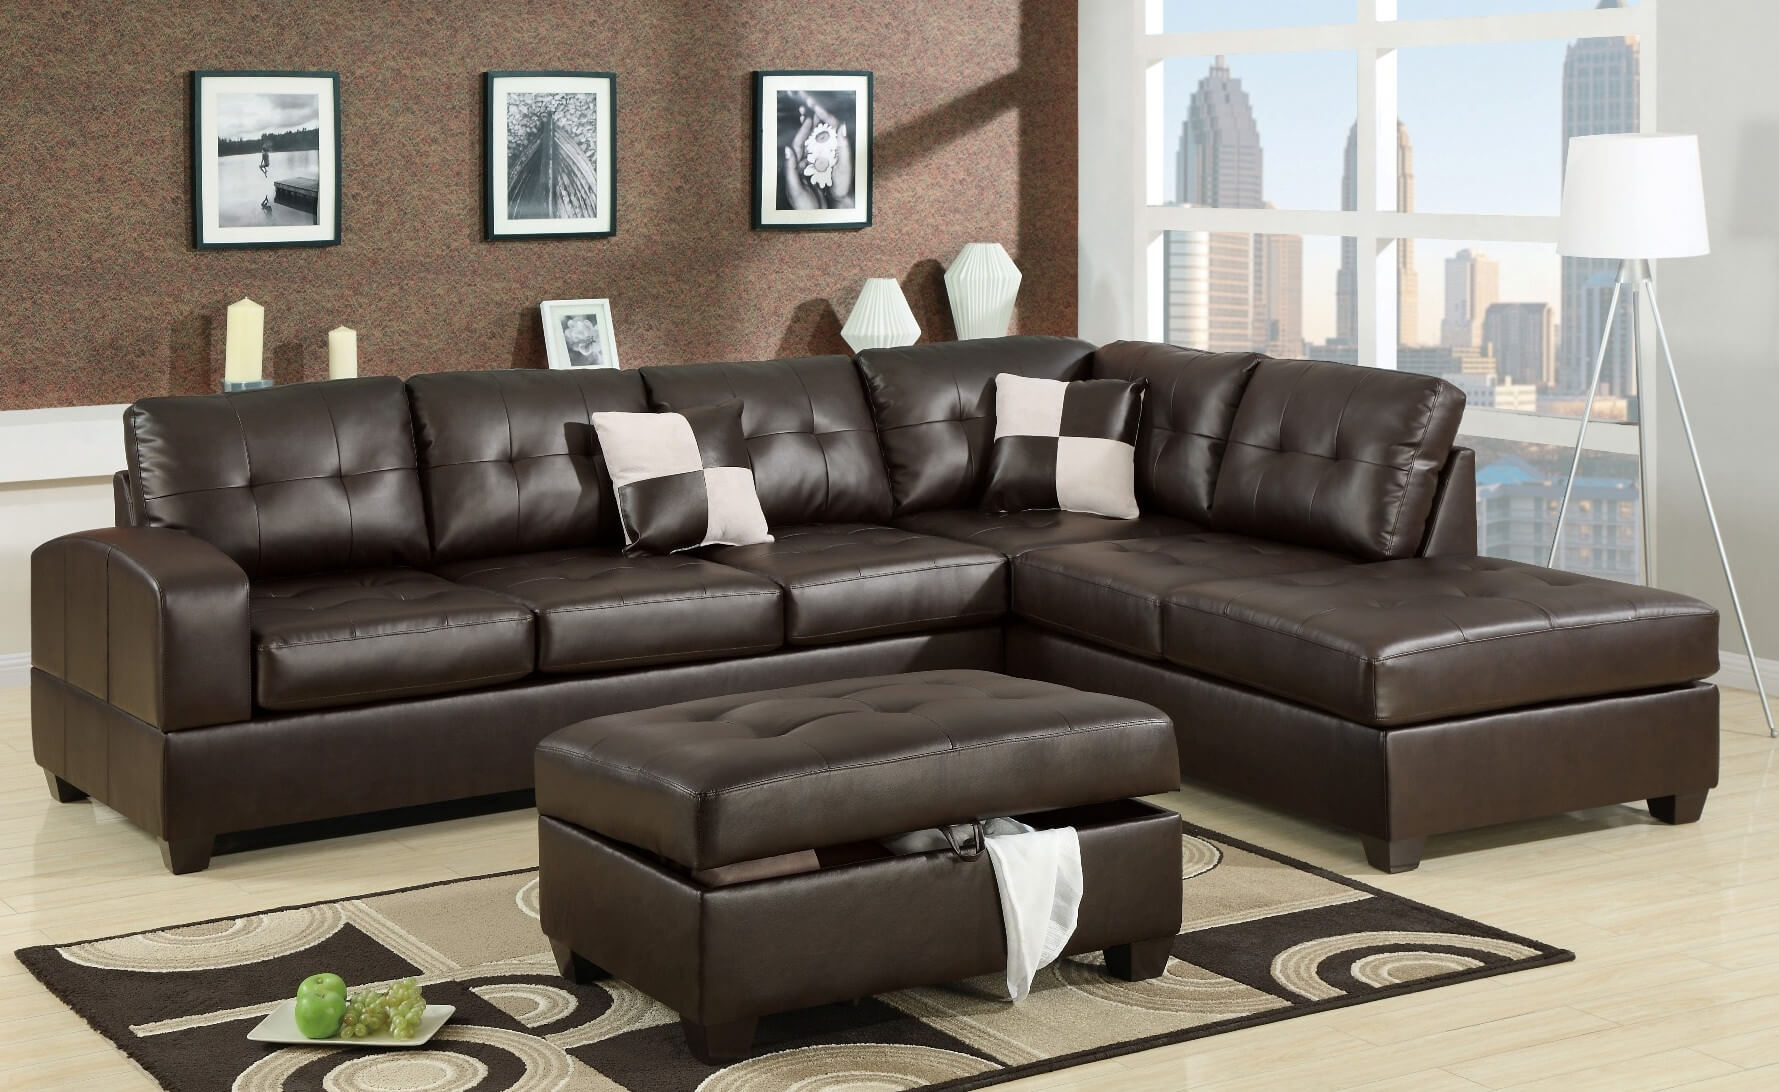 100 Awesome Sectional Sofas Under $1,000 (2018) With Sectional Sofas Under 1000 (Gallery 5 of 15)